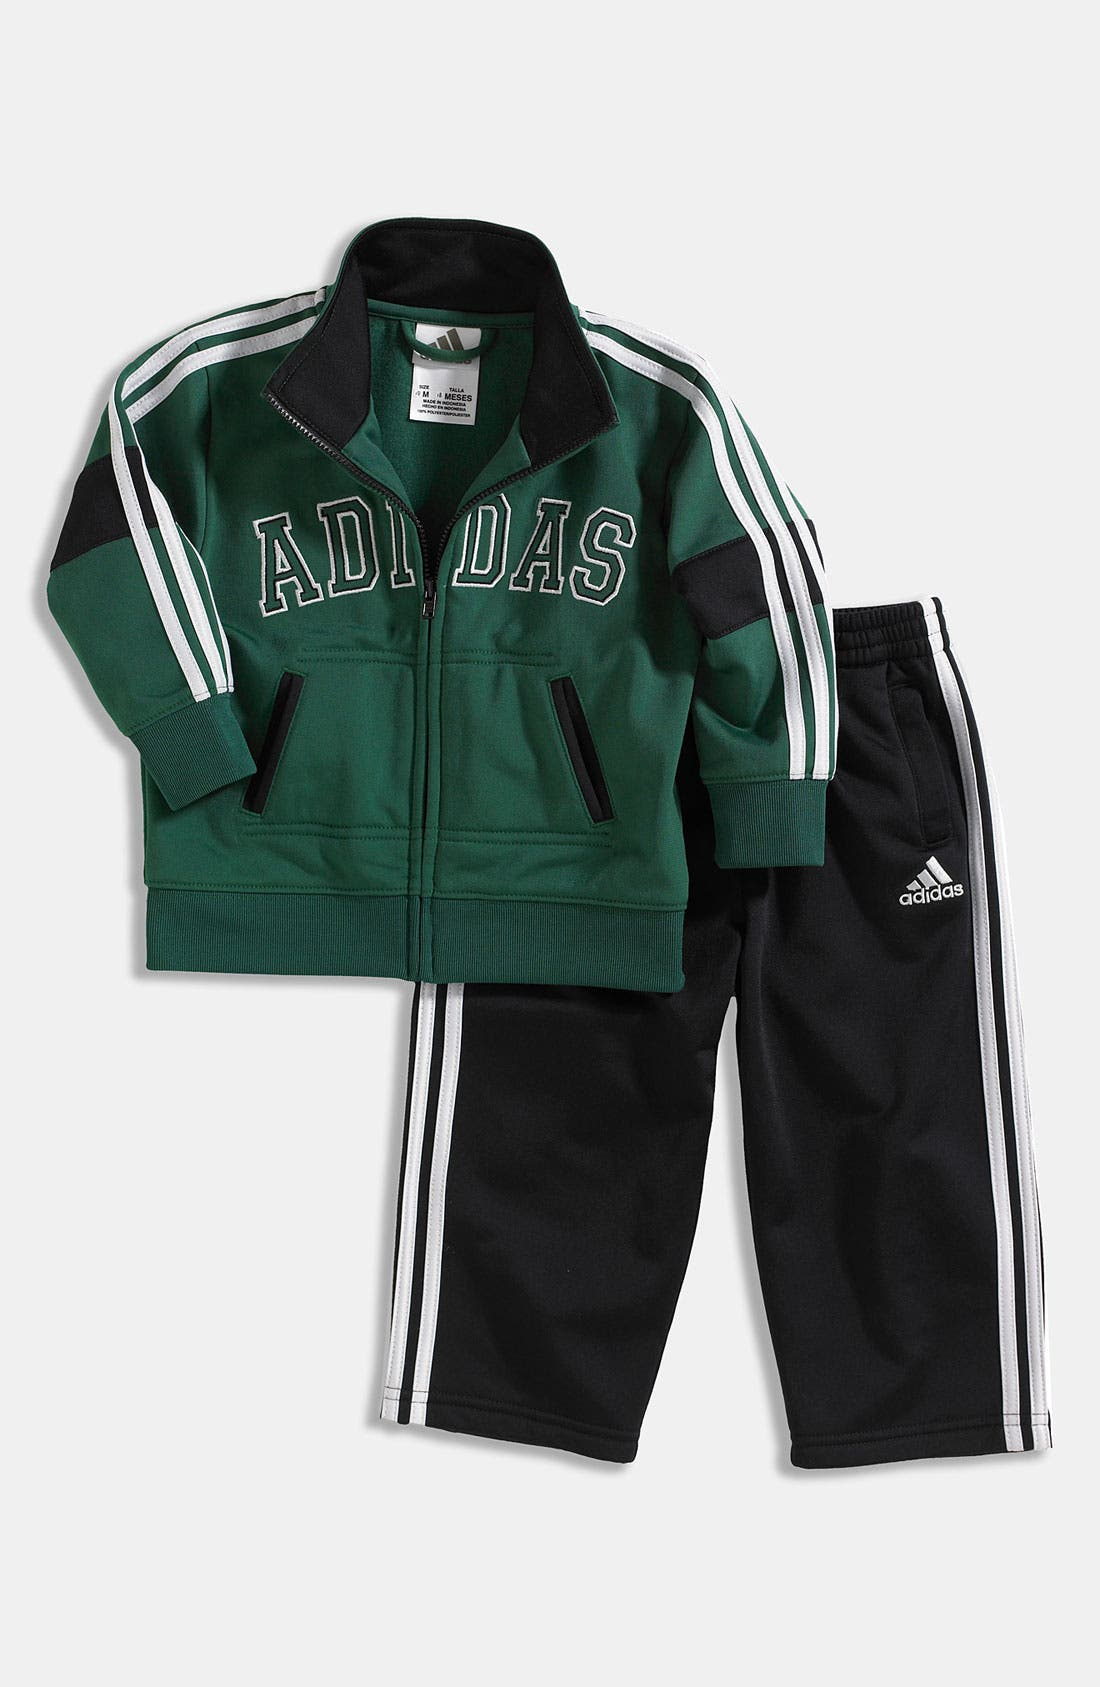 Main Image - adidas 'Fashion' Tricot Jacket & Pants (Toddler)